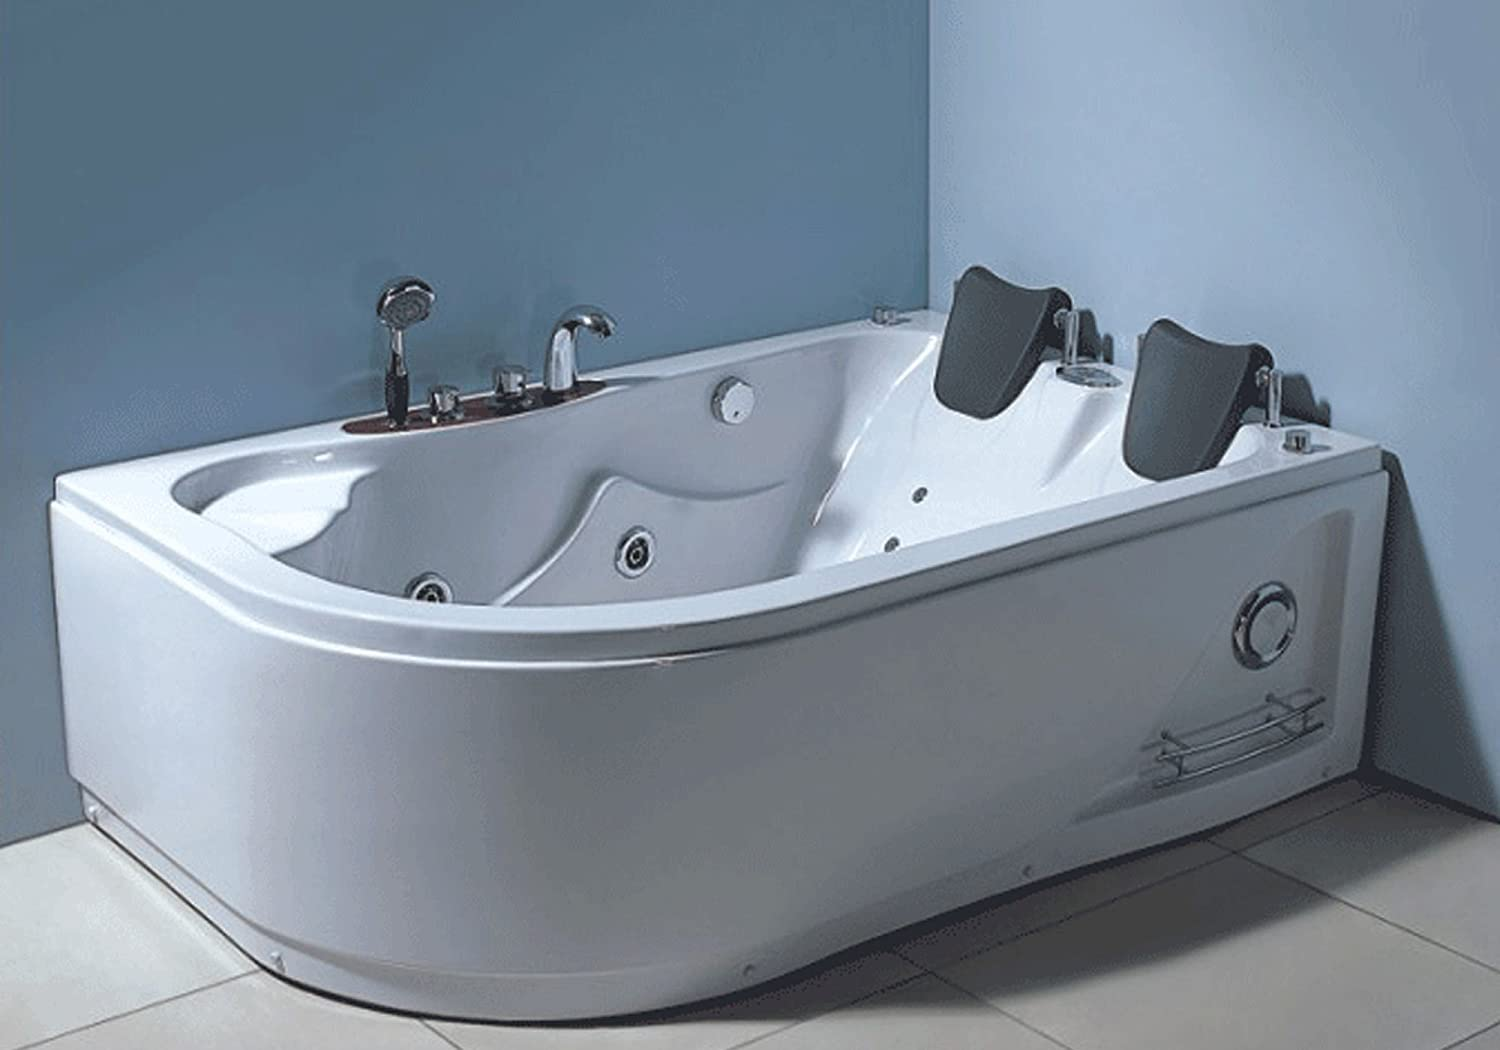 WHIRLPOOL JACUZZI SPA CORNER BATH Varadero 170 x 115 cm HOT TUB ...